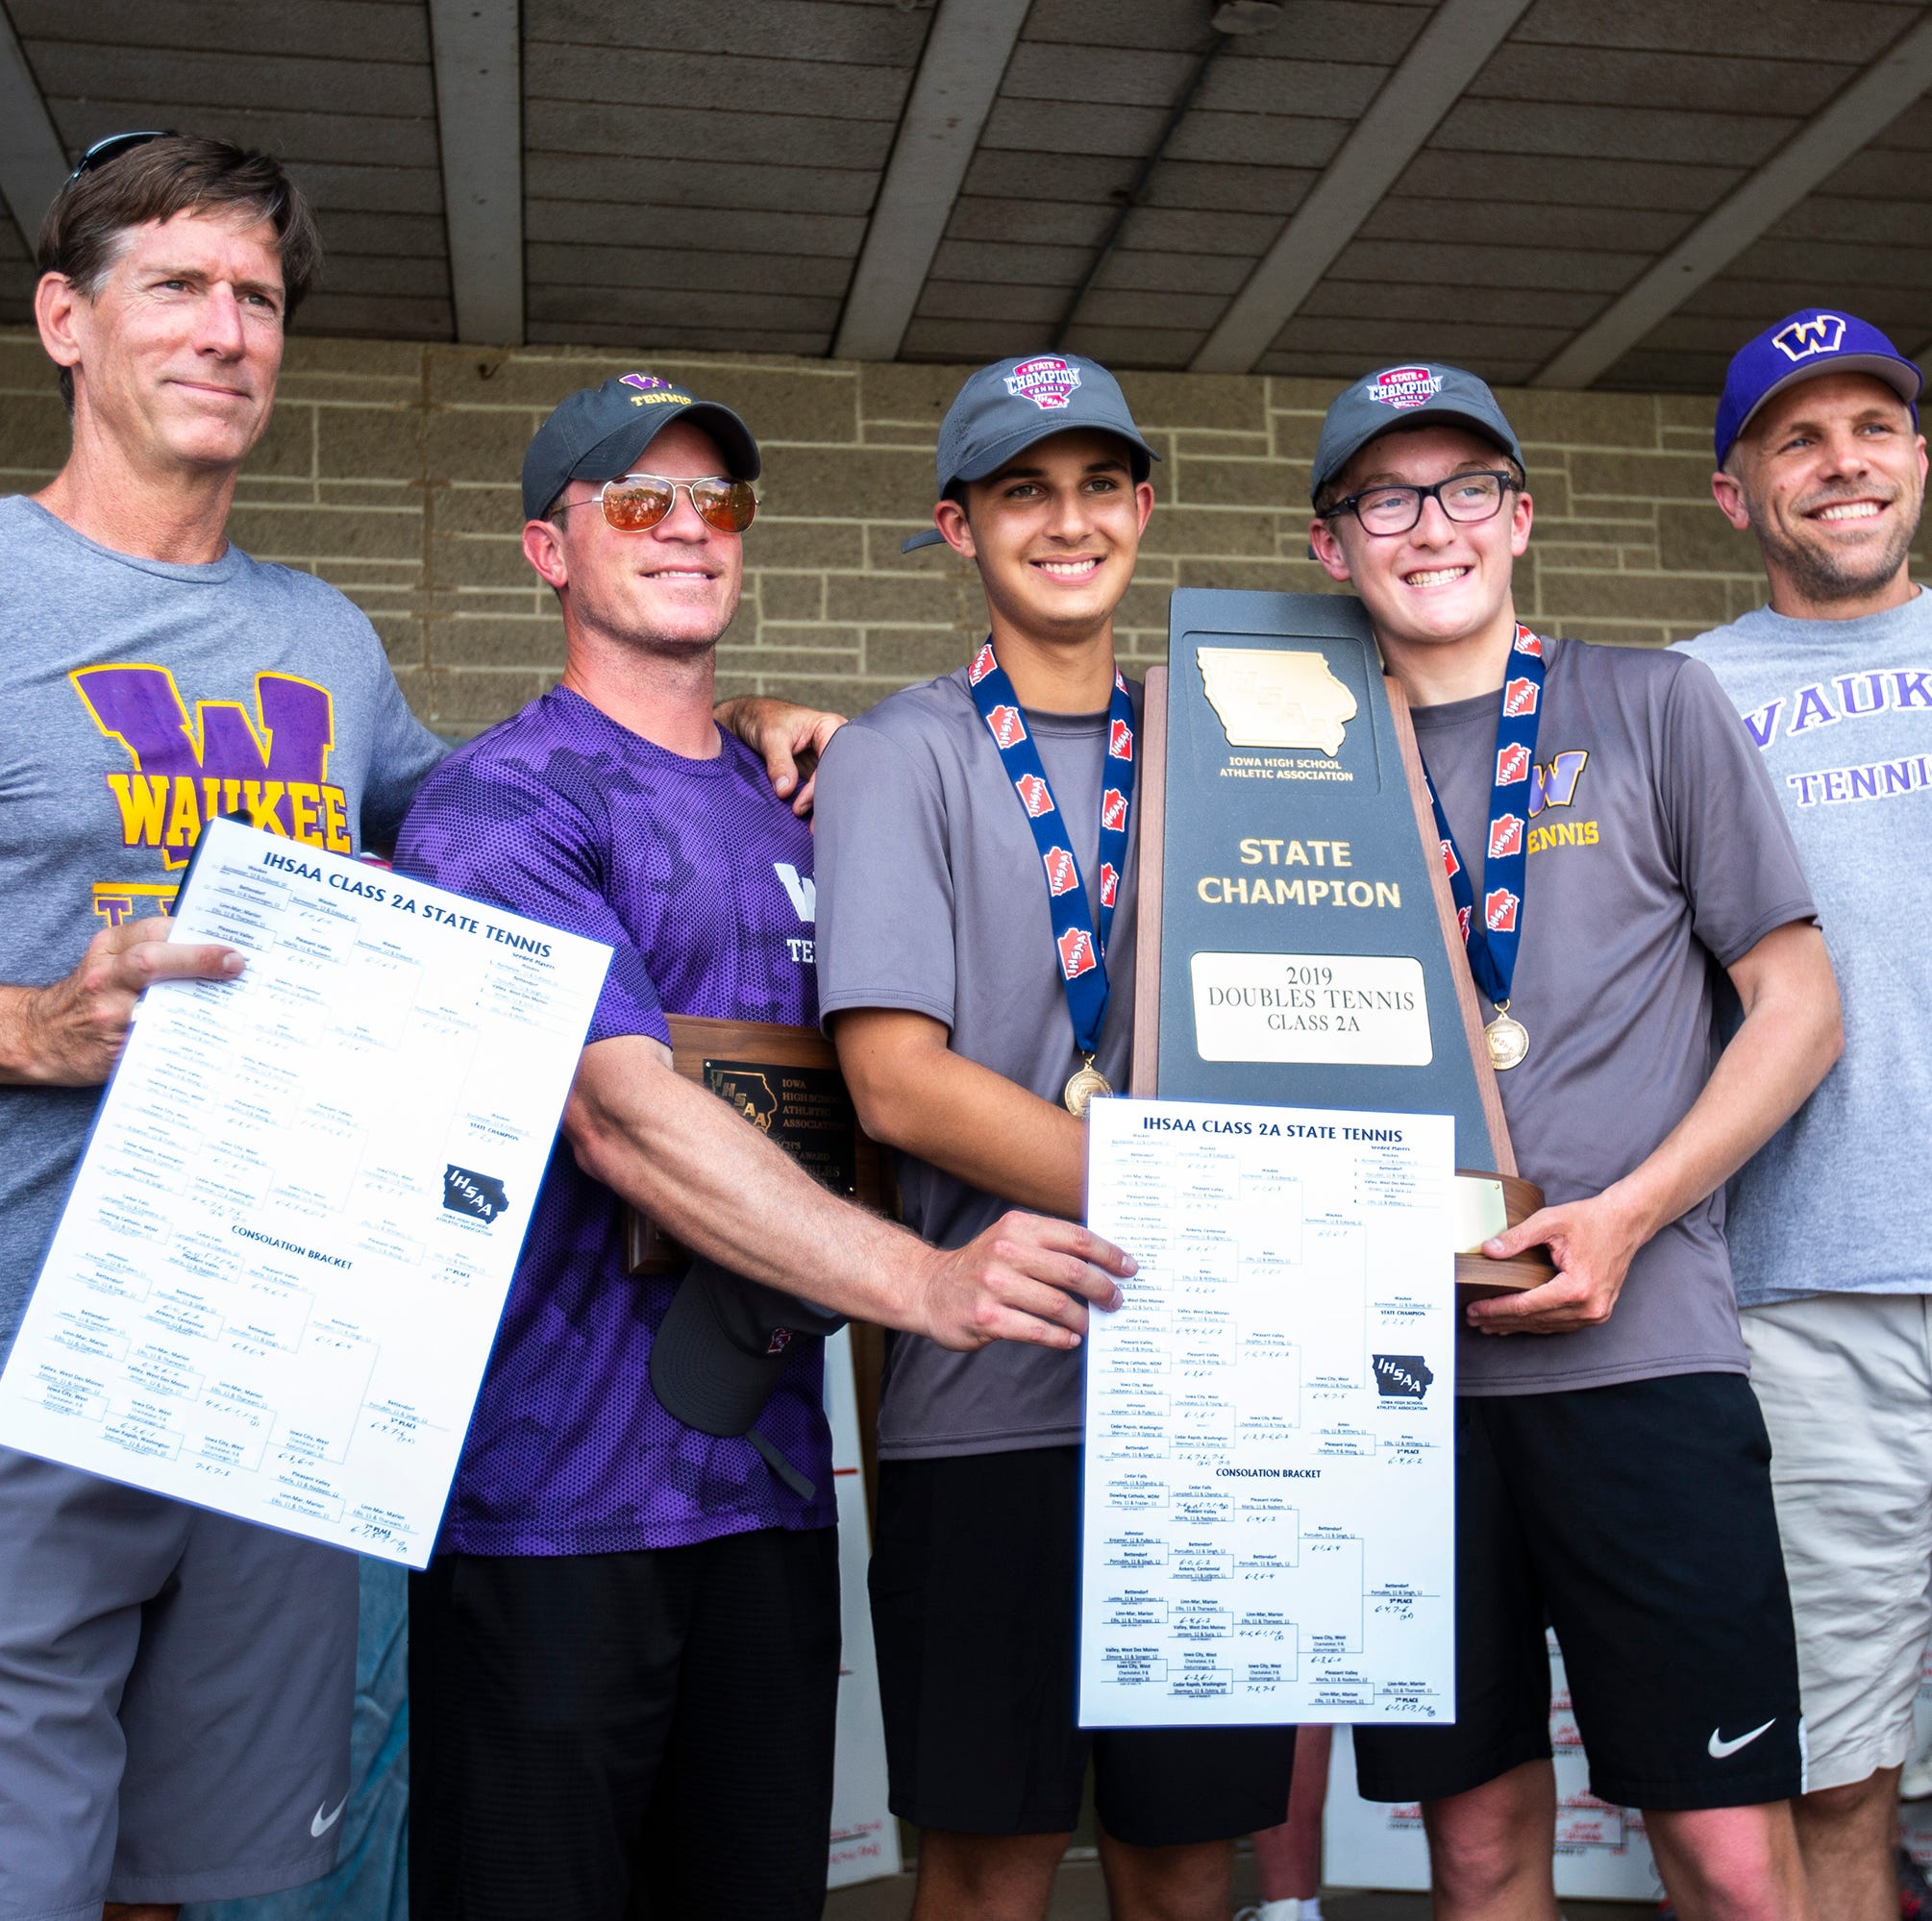 State tennis: Waukee, Norwalk duos win doubles championships